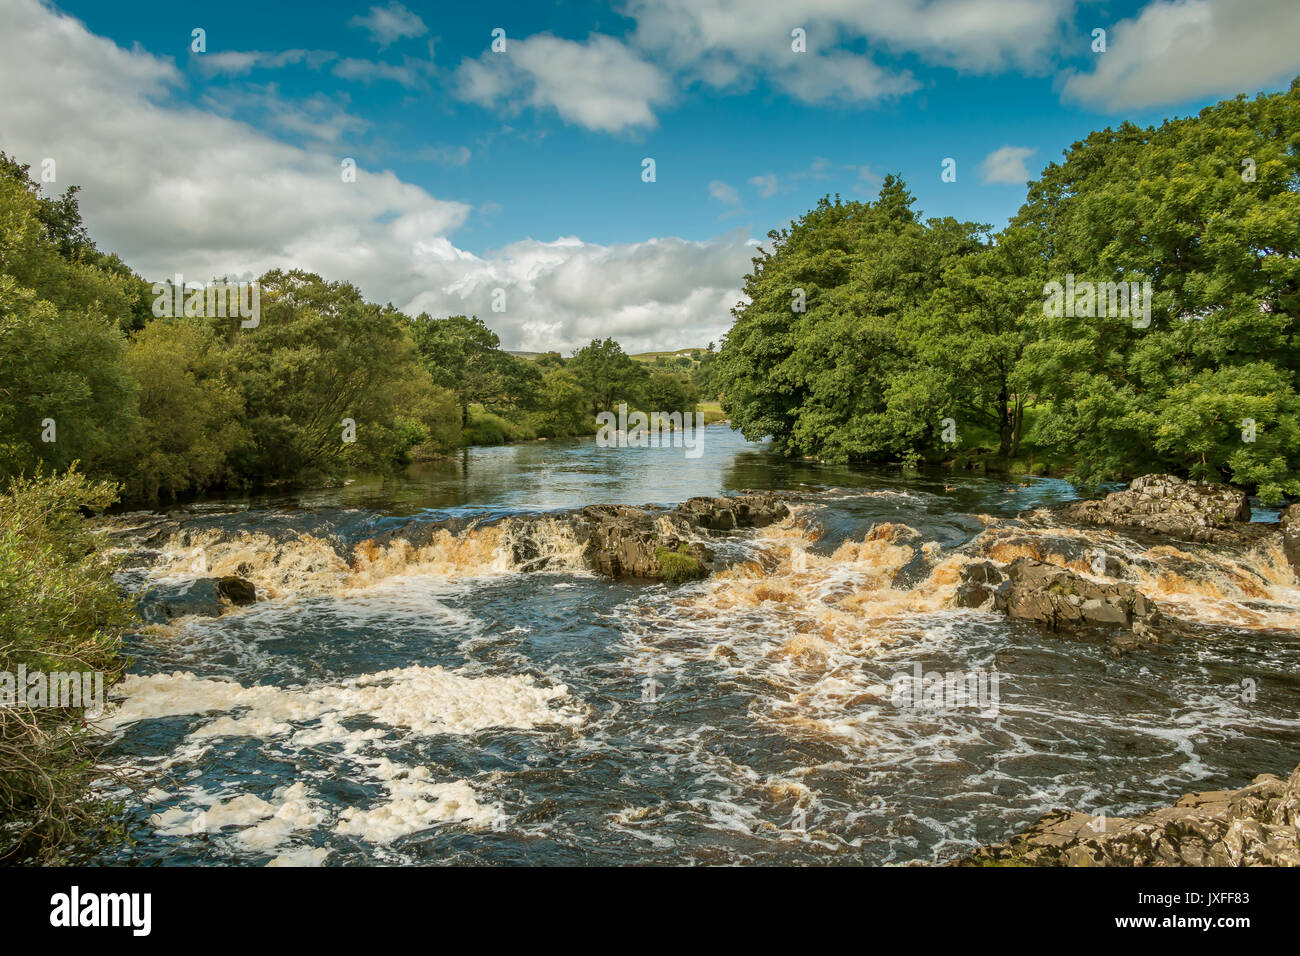 teesdale-landscape-the-river-tees-between-low-force-and-high-force-JXFF83.jpg